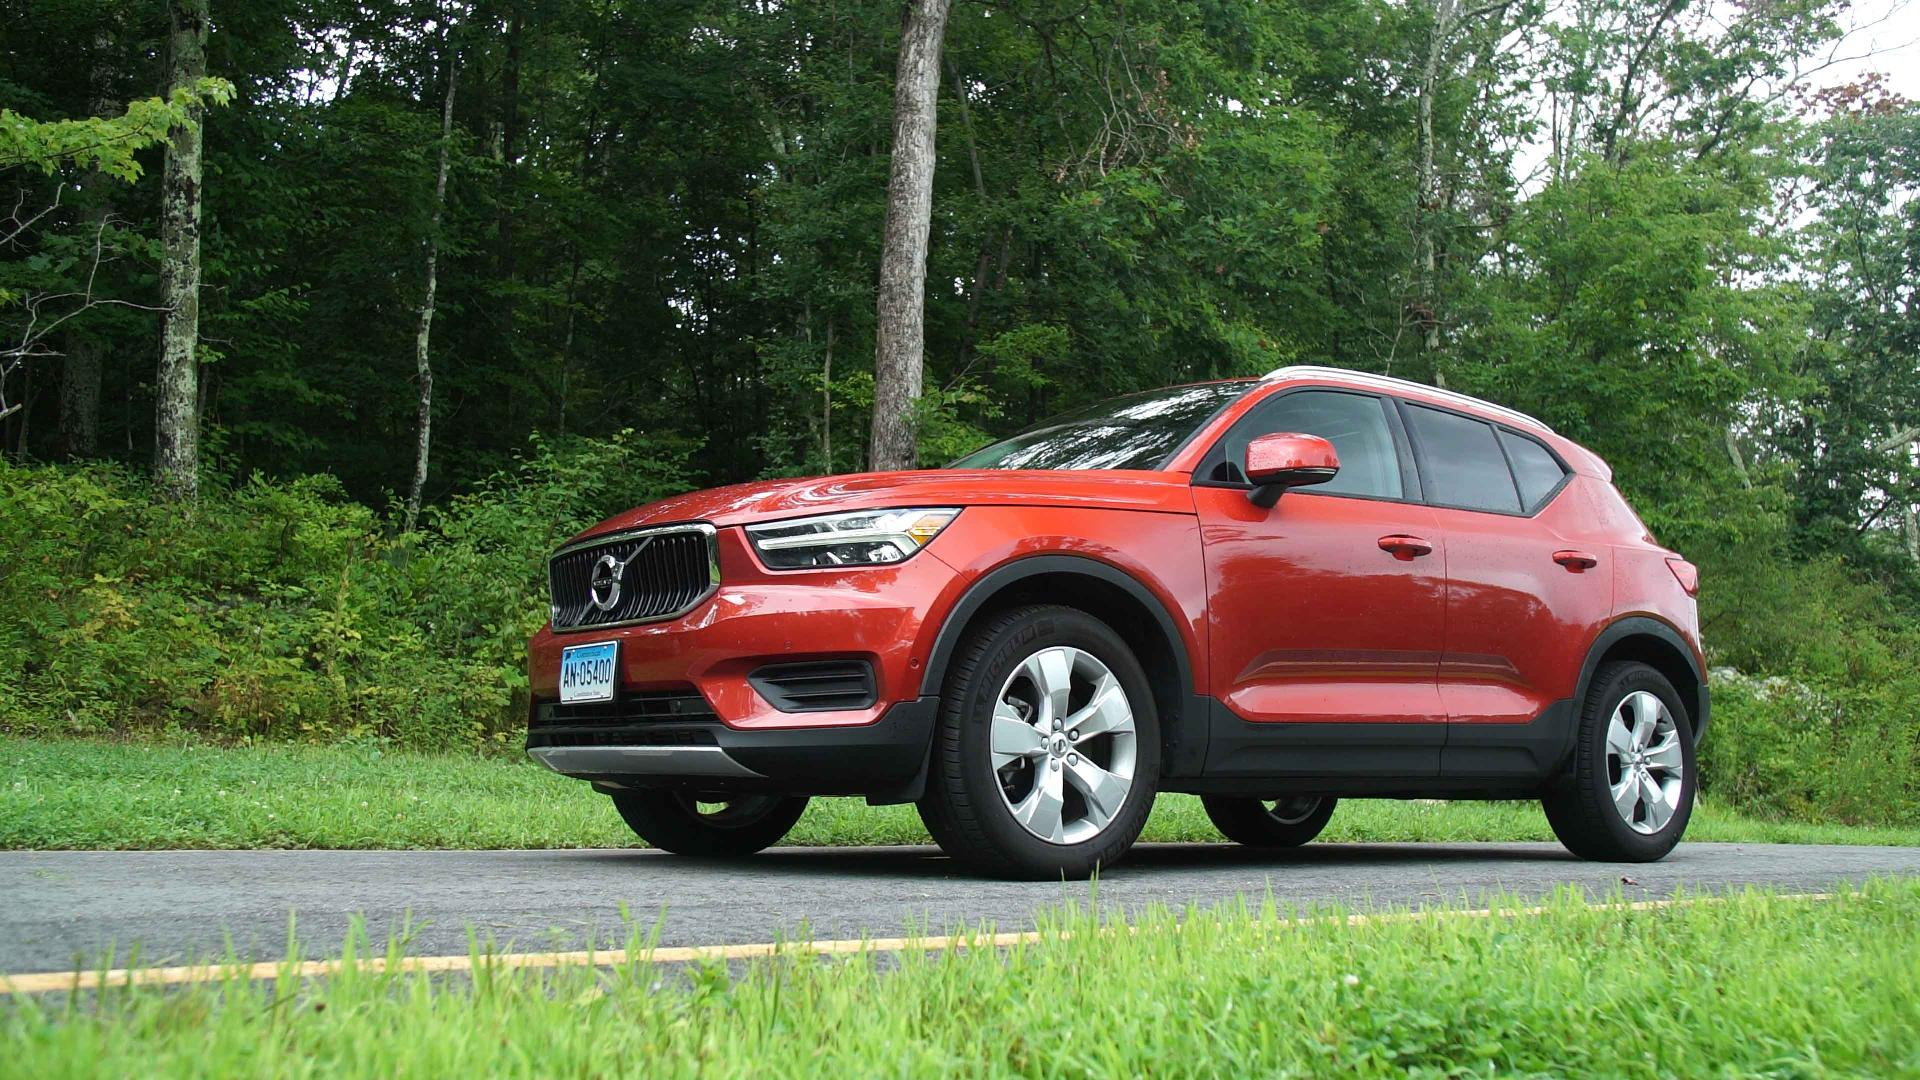 2017 Volvo Xc60 Reviews Ratings Prices Consumer Reports Timing Belt For Xc90 2018 Xc40 Review Stylish Swede Quirky Controls